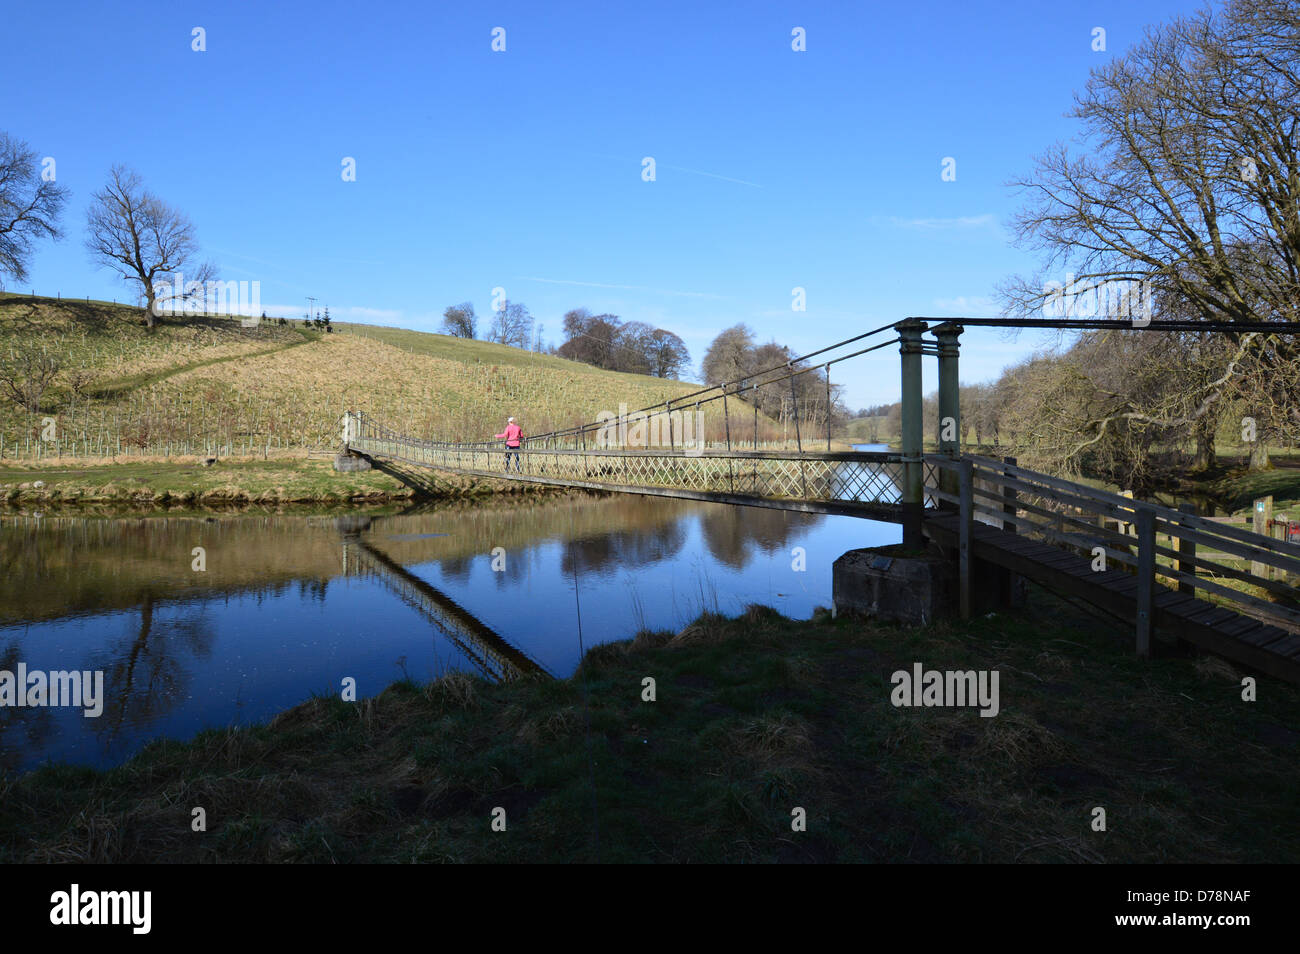 Woman Walking Across the Suspension Bridge over the River  Wharfe near Hebden on the Dales Way Long Distance Footpath Stock Photo